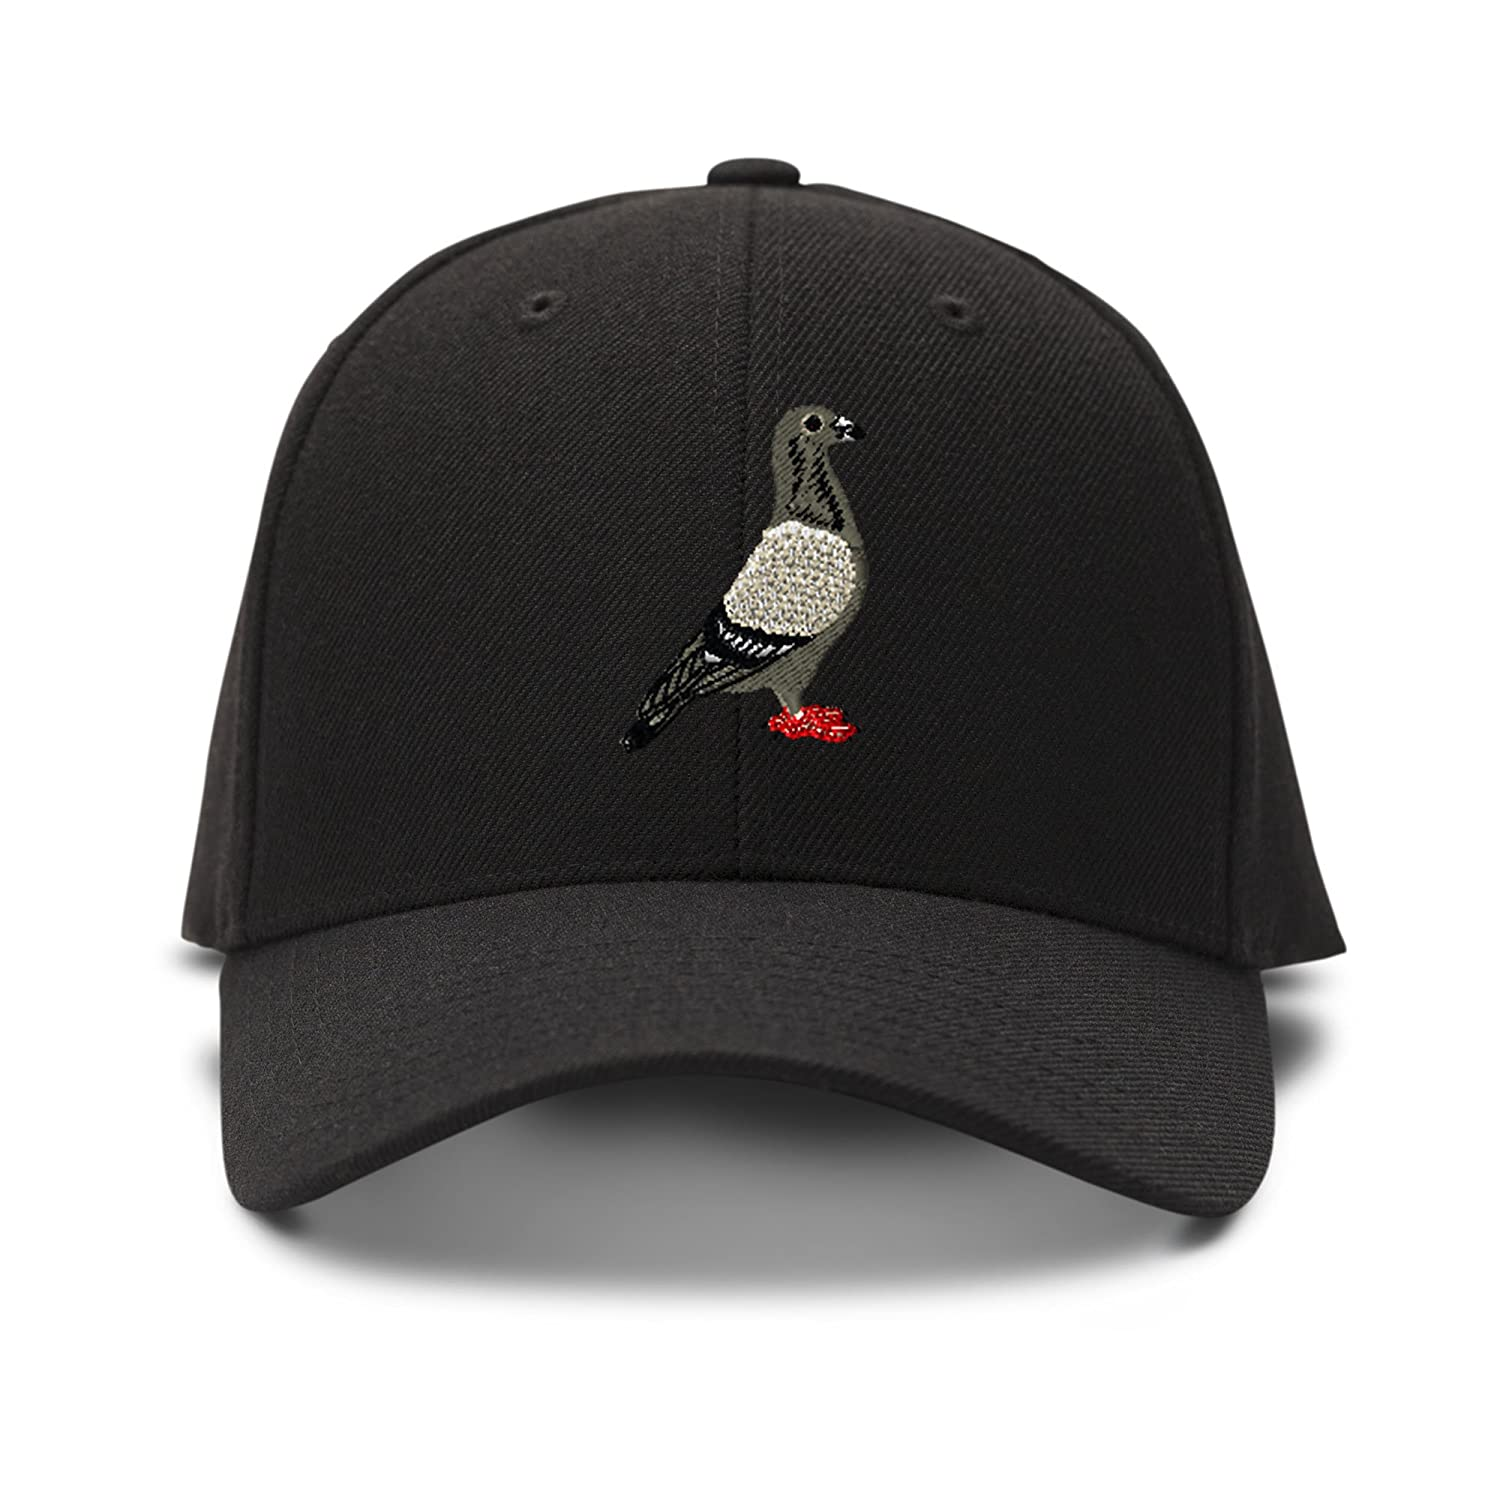 679bd97d8b7 Pigeon embroidery adjustable structured baseball hat black clothing jpg  1500x1500 Pigeon cap